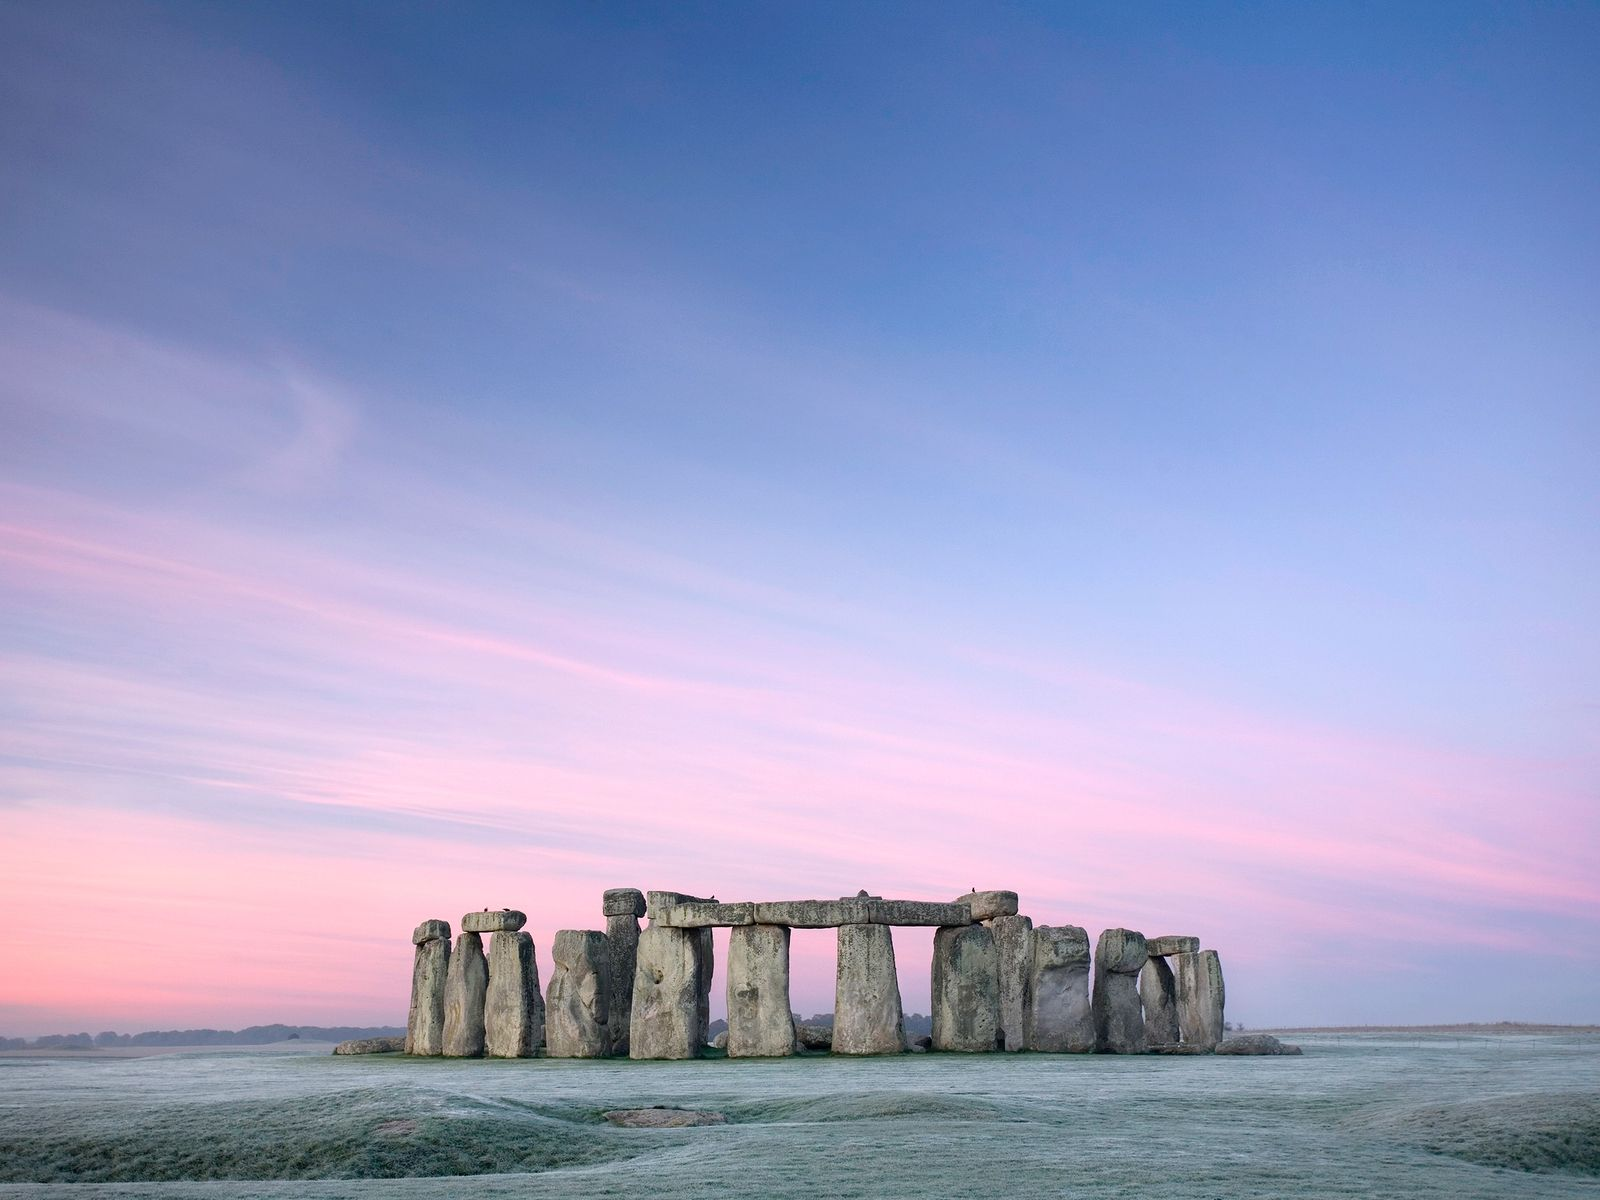 Bands of pink and purple streak the sky over Stonehenge at dawn.